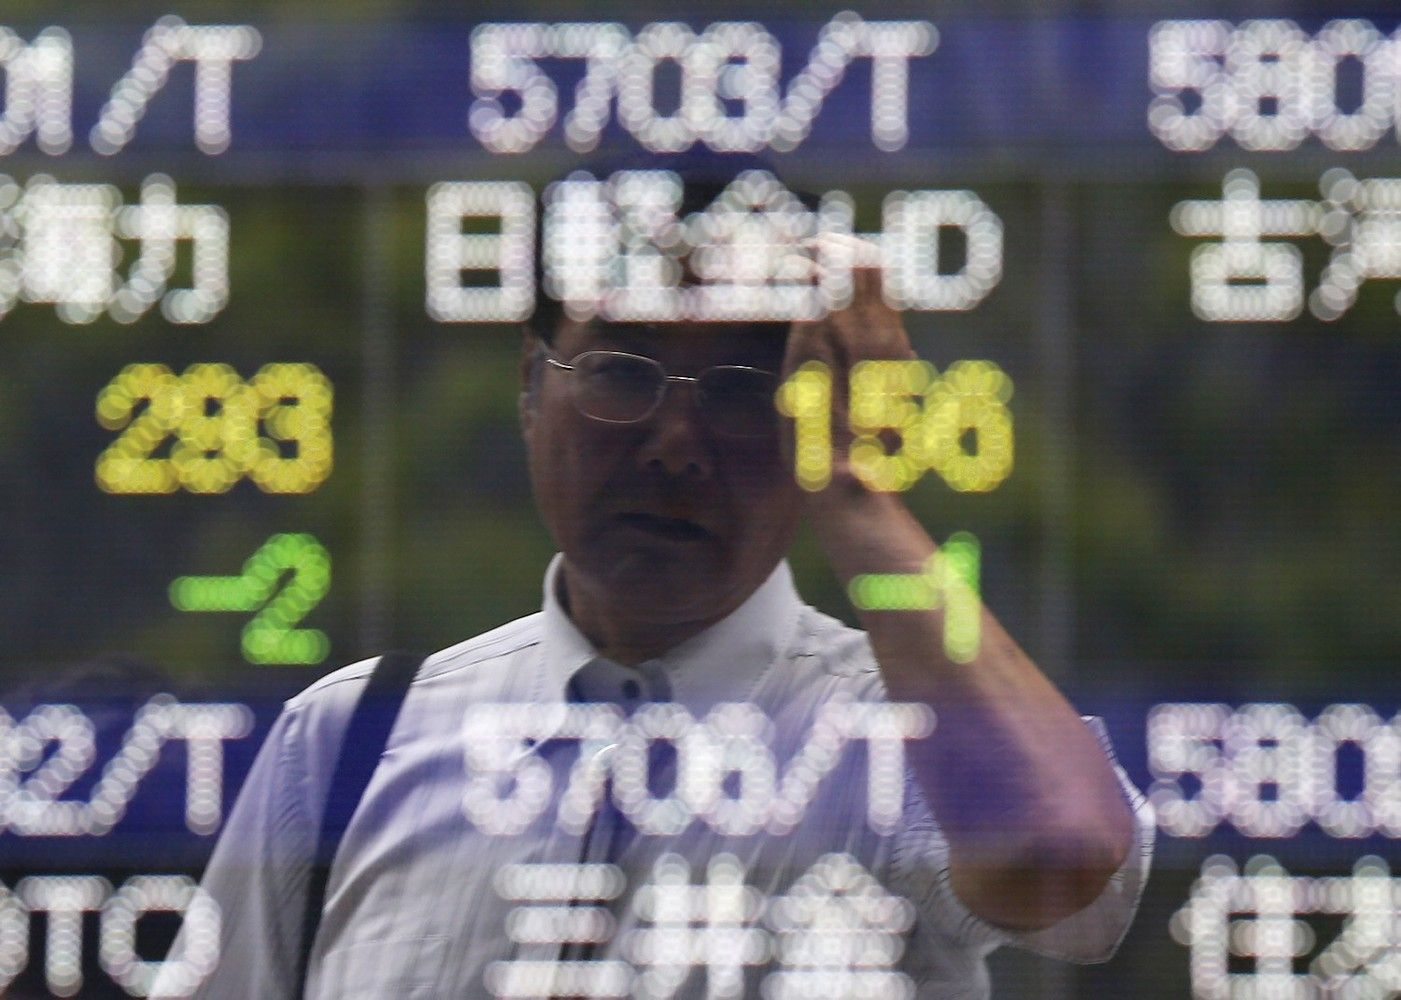 Asia Stocks Reverse Gains as Korea Angst Lingers: Markets Wrap